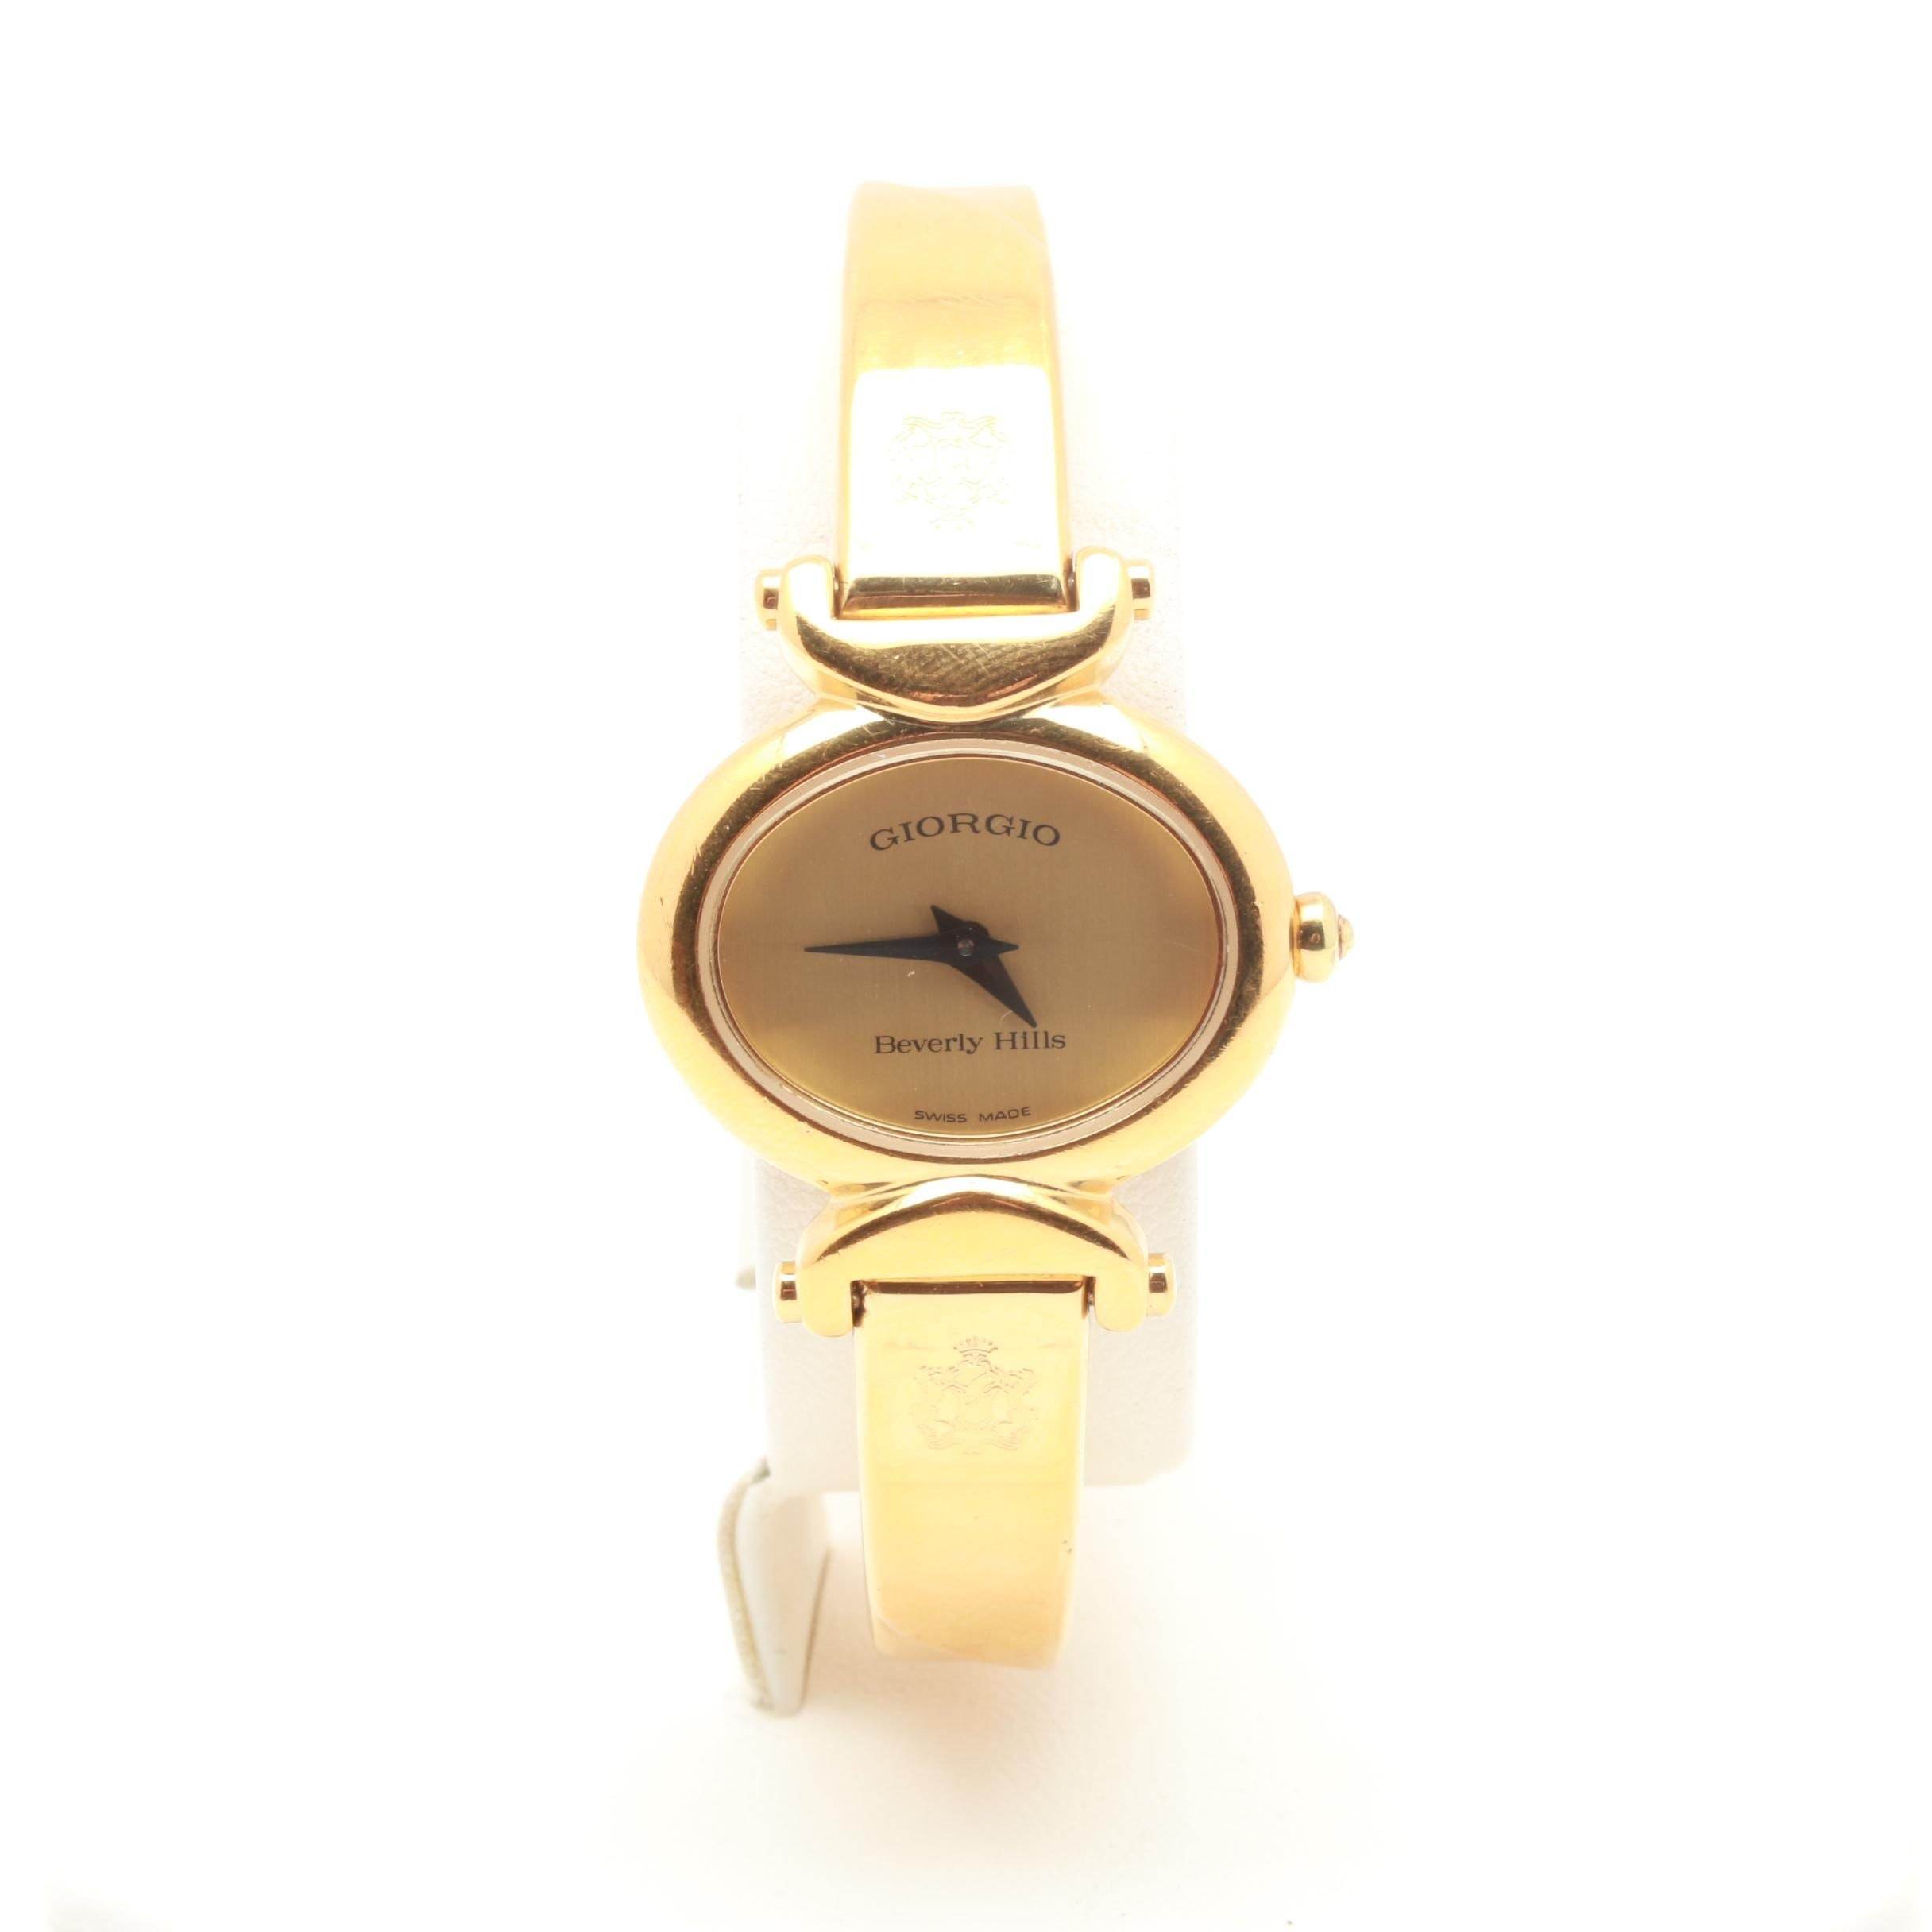 Giorgio Beverly Hills Gold Tone Wristwatch